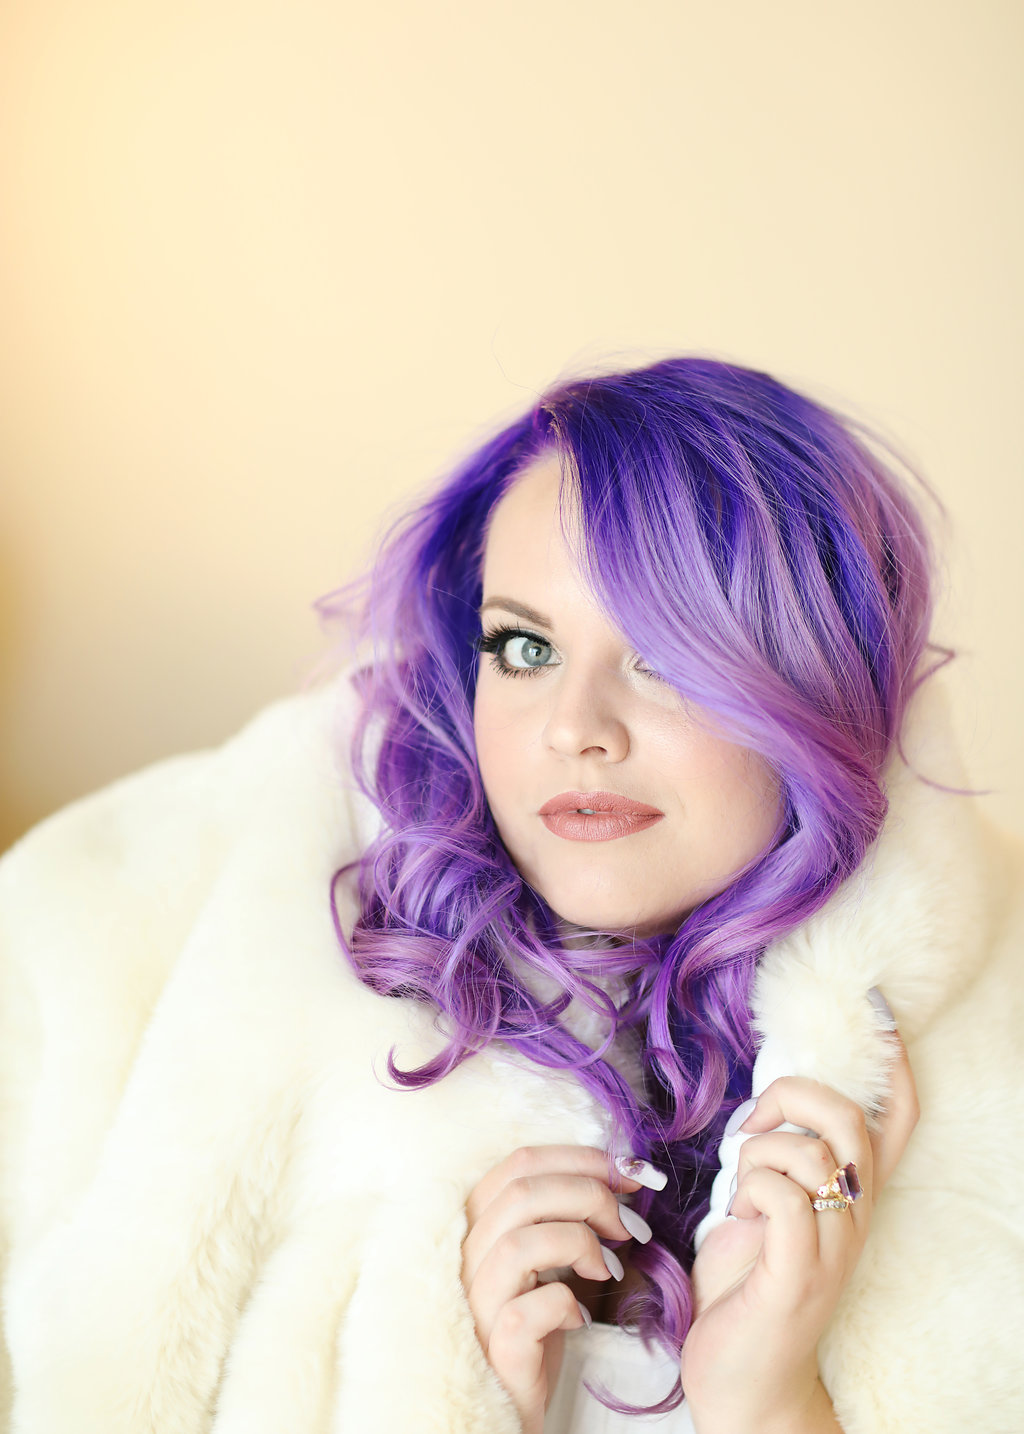 Wrapped in a white fur, this Ultra violet haired bride poses at Chateau Adare in the Bridal Suite. Part of the Temecula Valley.